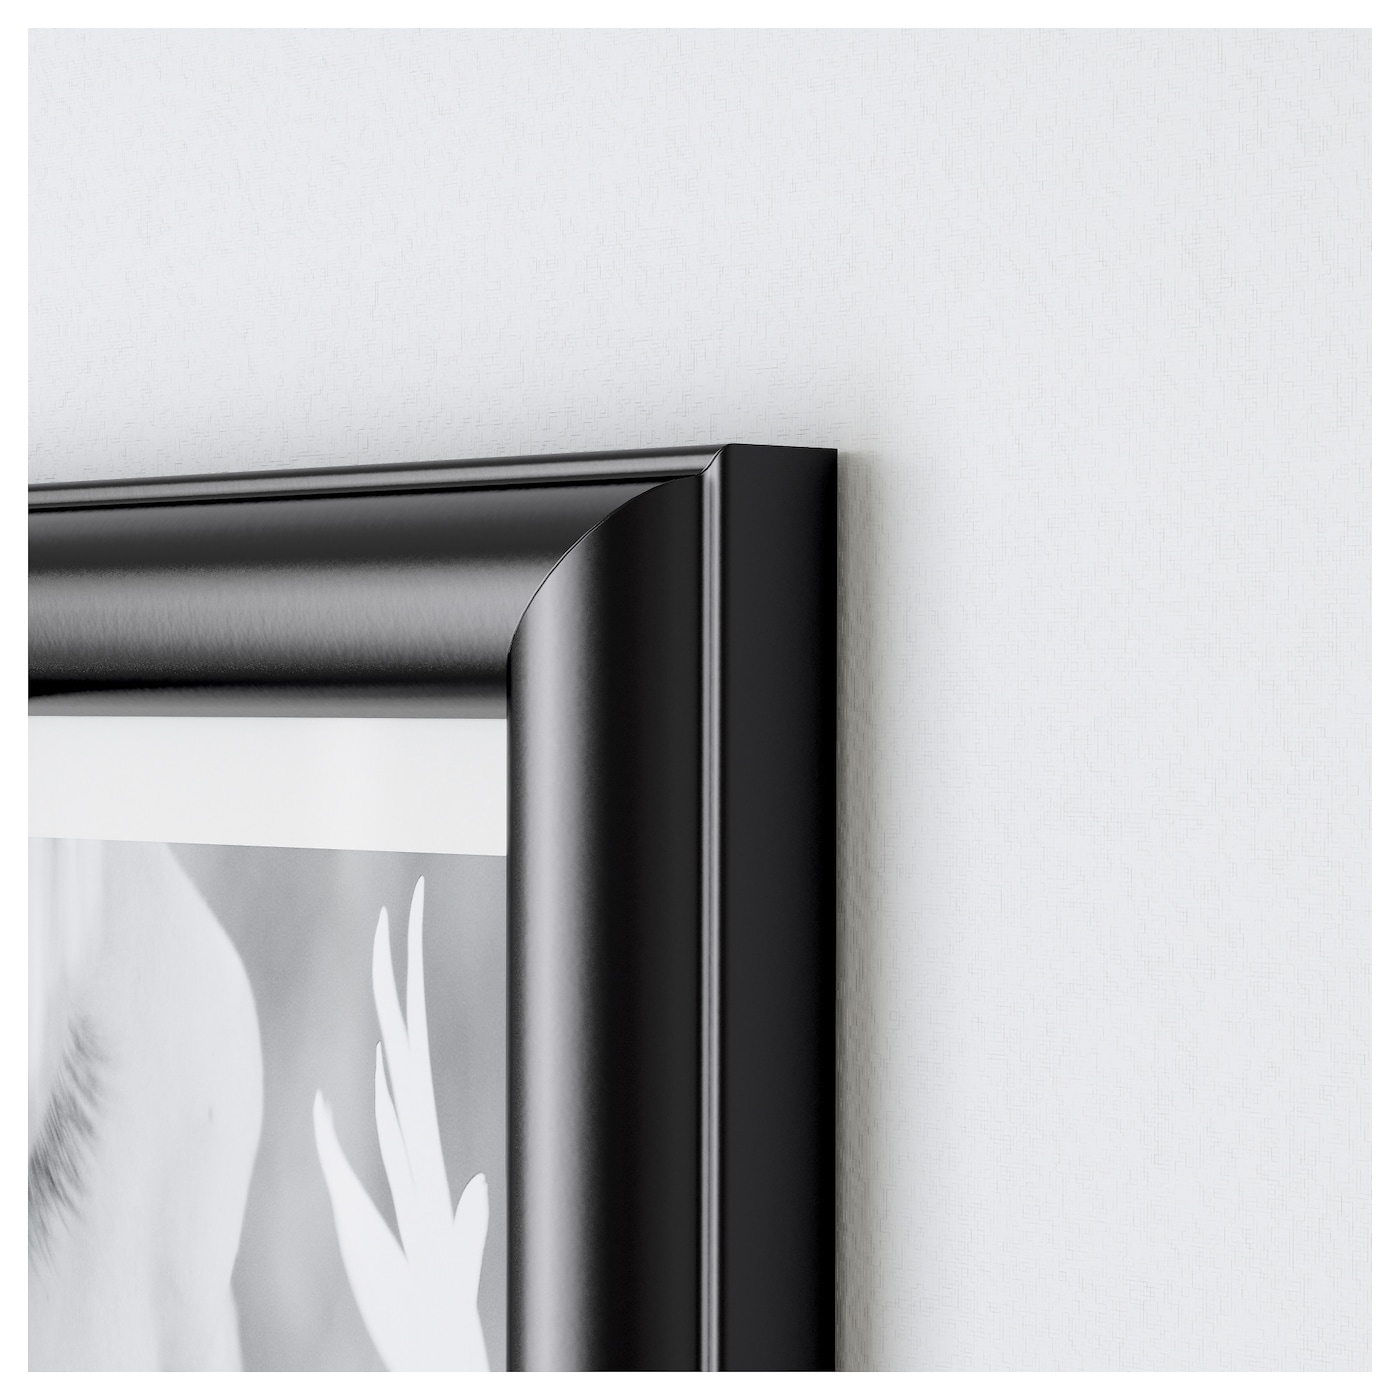 IKEA MARIETORP frame Can be hung horizontally or vertically to fit in the space available.